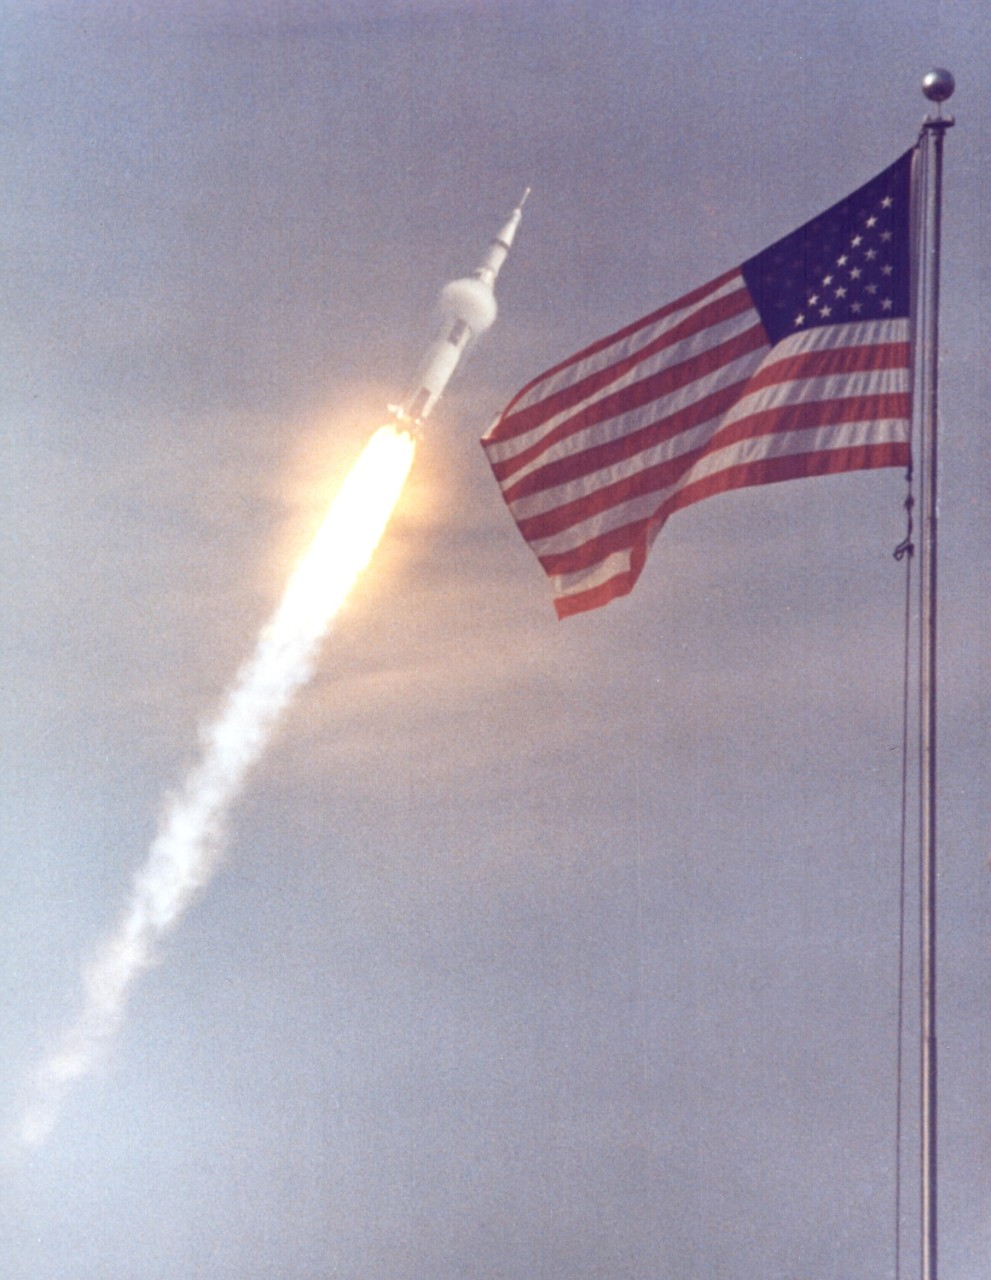 The Apollo 11 rocket blasts off with the American flag waving in the foreground.